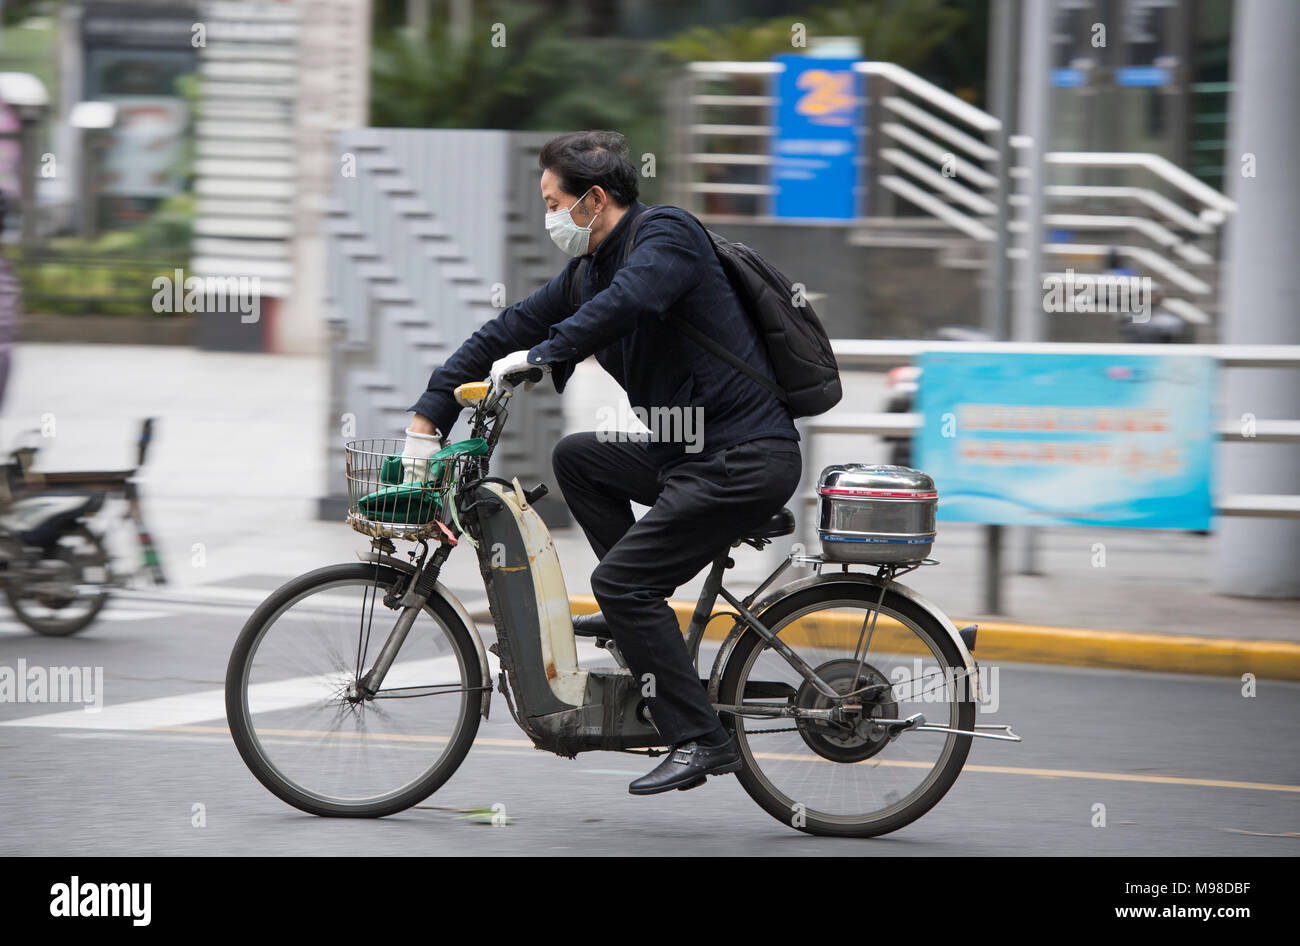 Man wearing a face mask riding a scooter in Shanghai, China - Stock Image